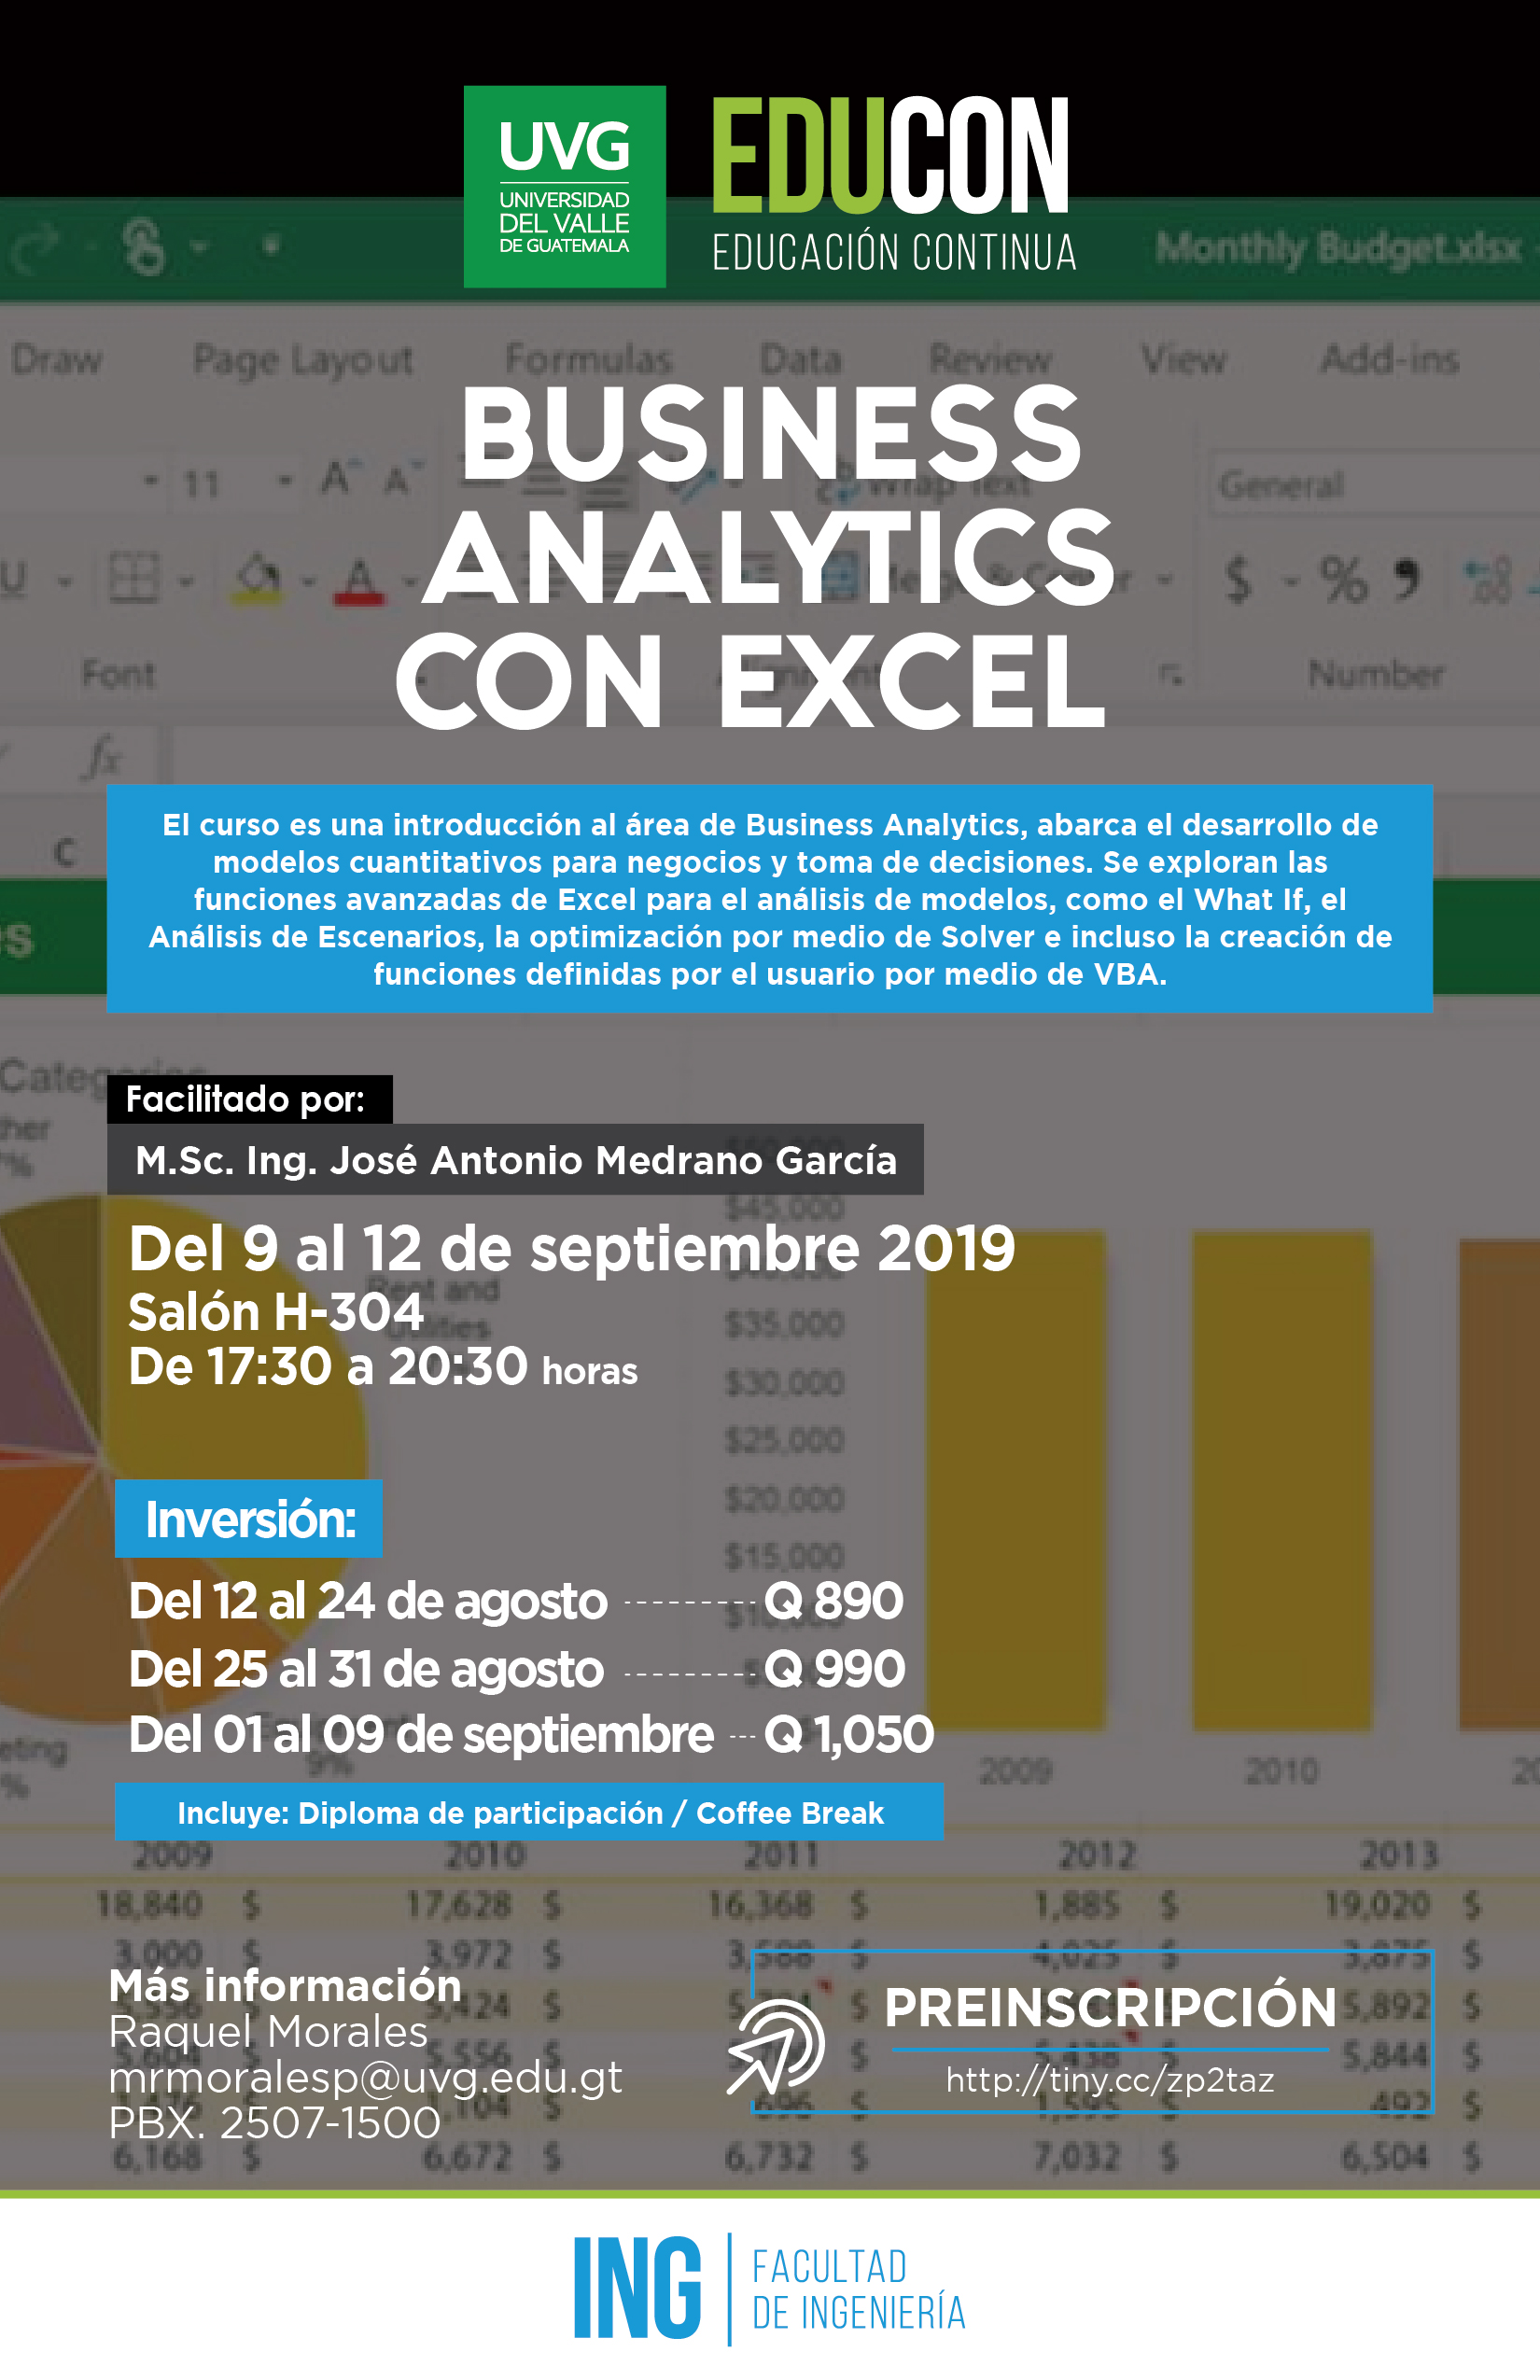 BUSINESS ANALYTICS CON EXCEL